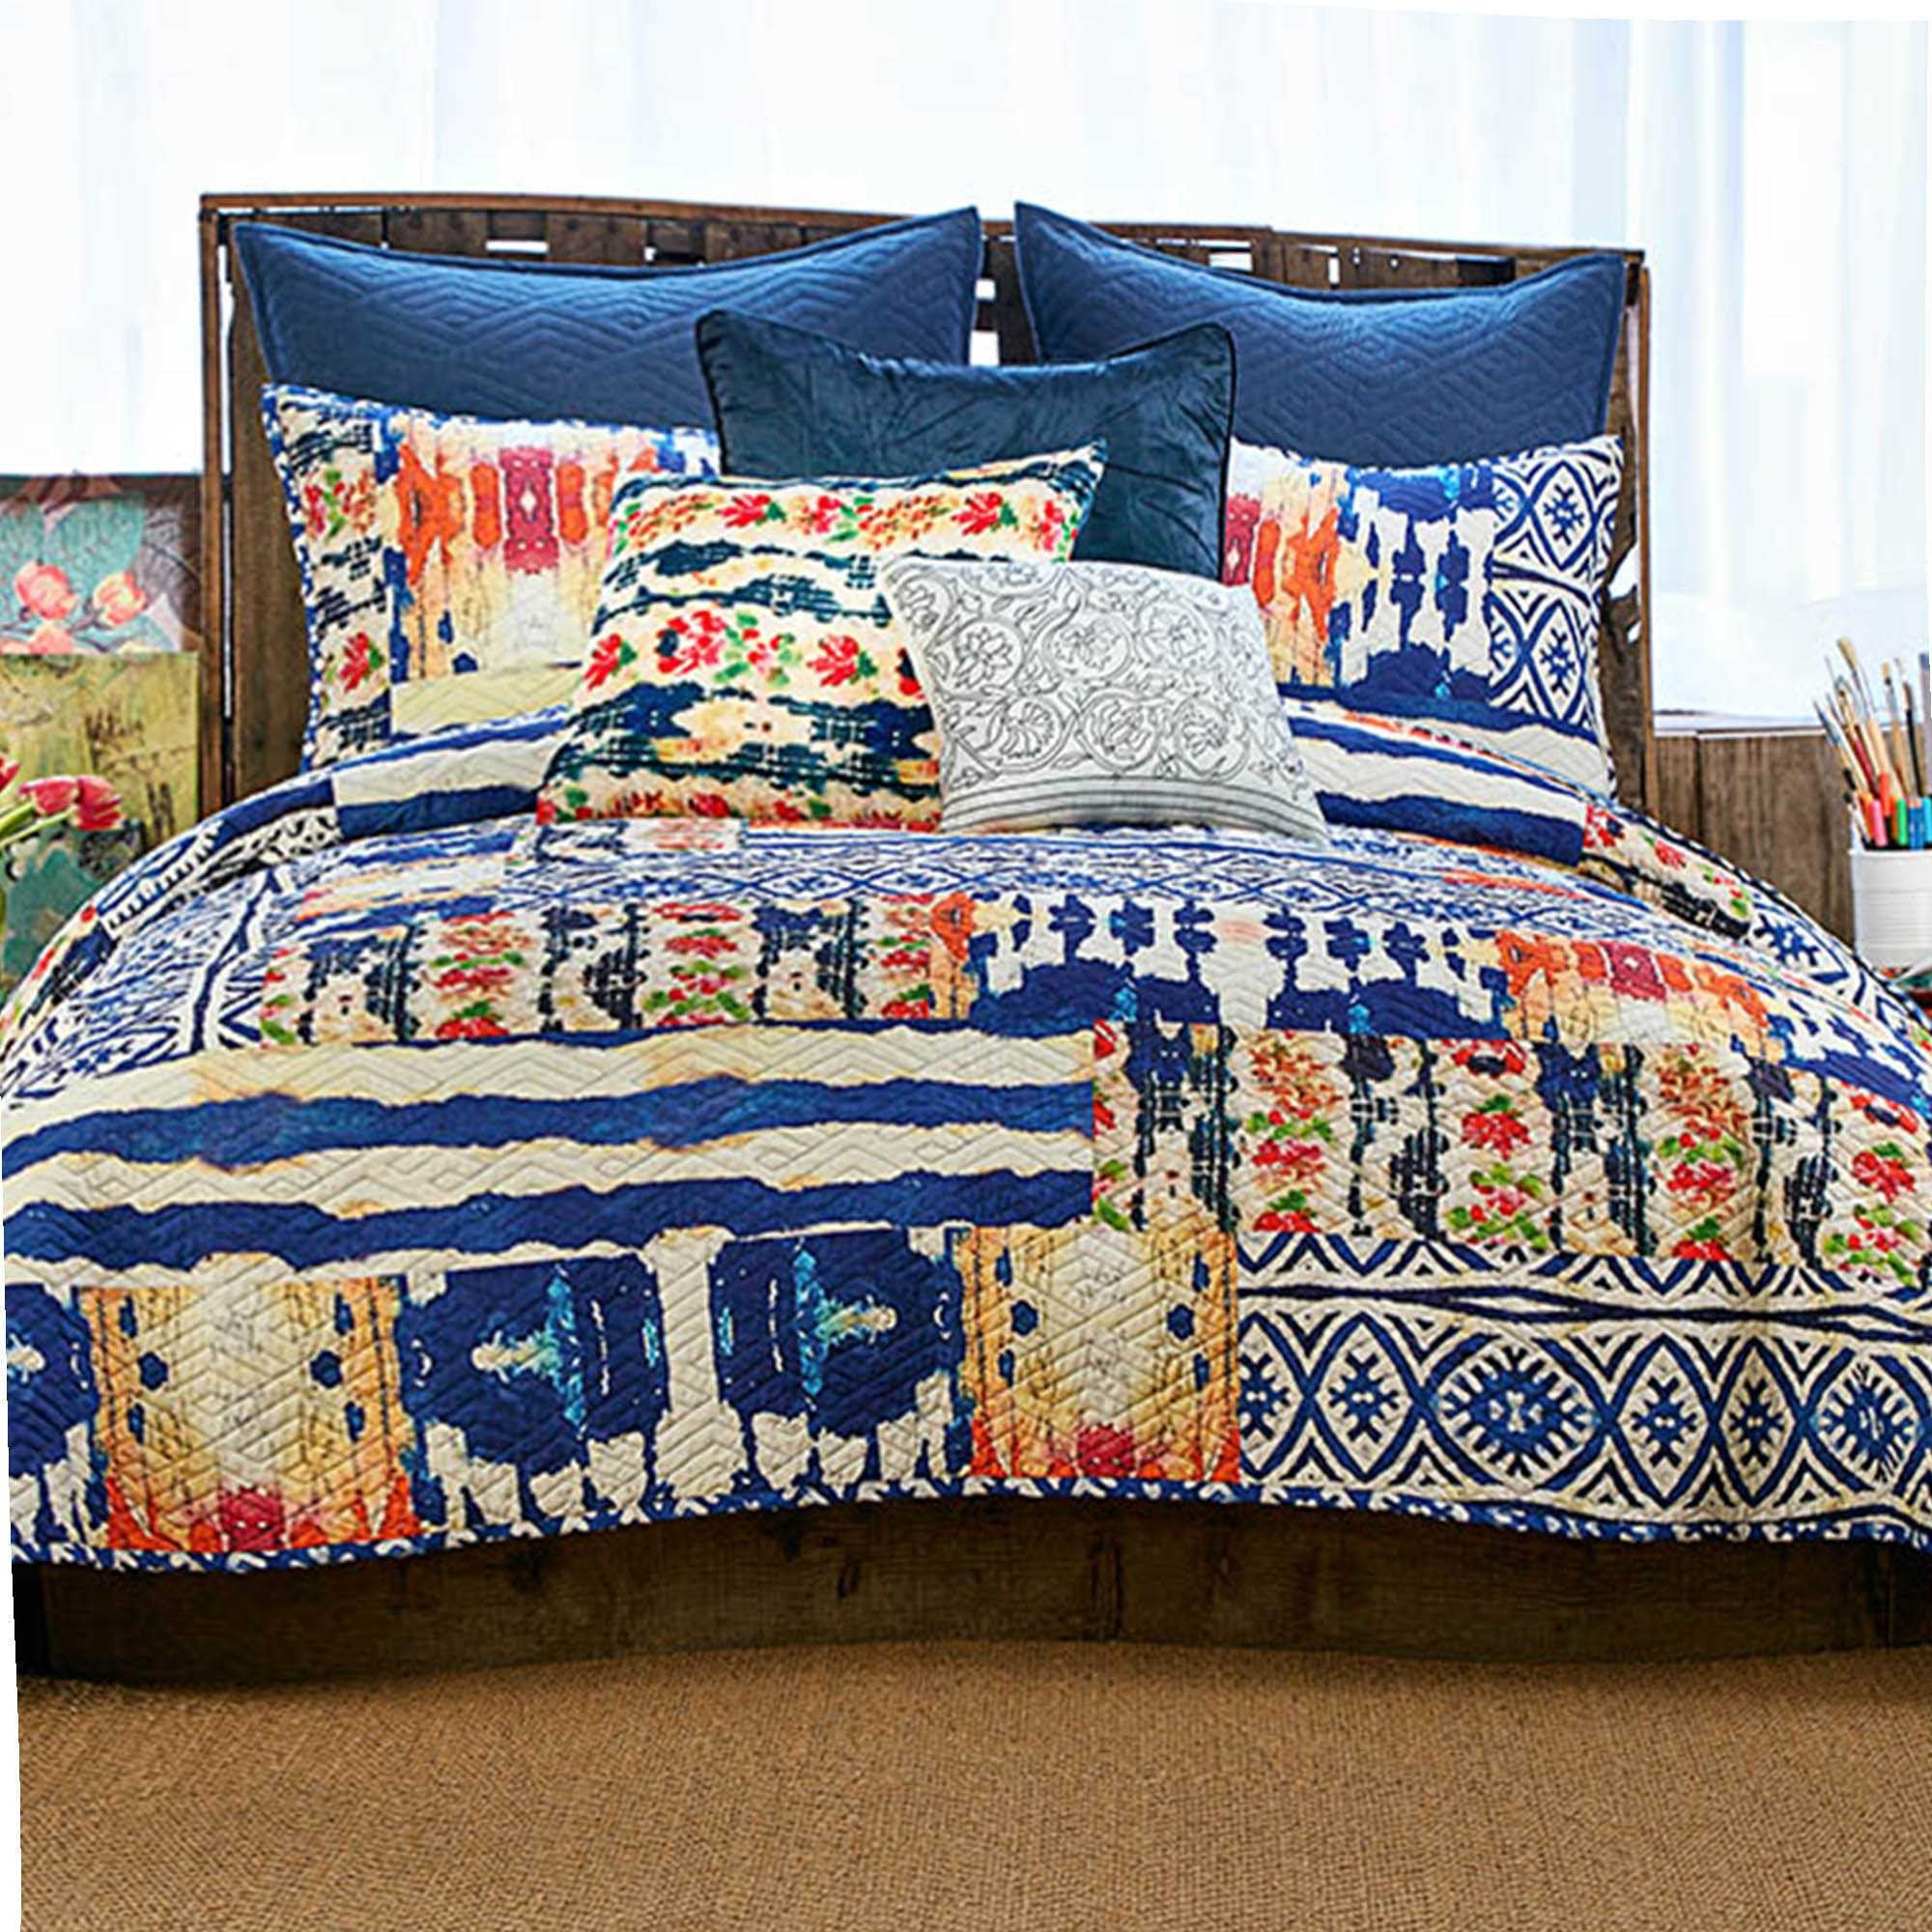 set comforter bedding better gardens reviews patchwork com homes and product walmart kids boho